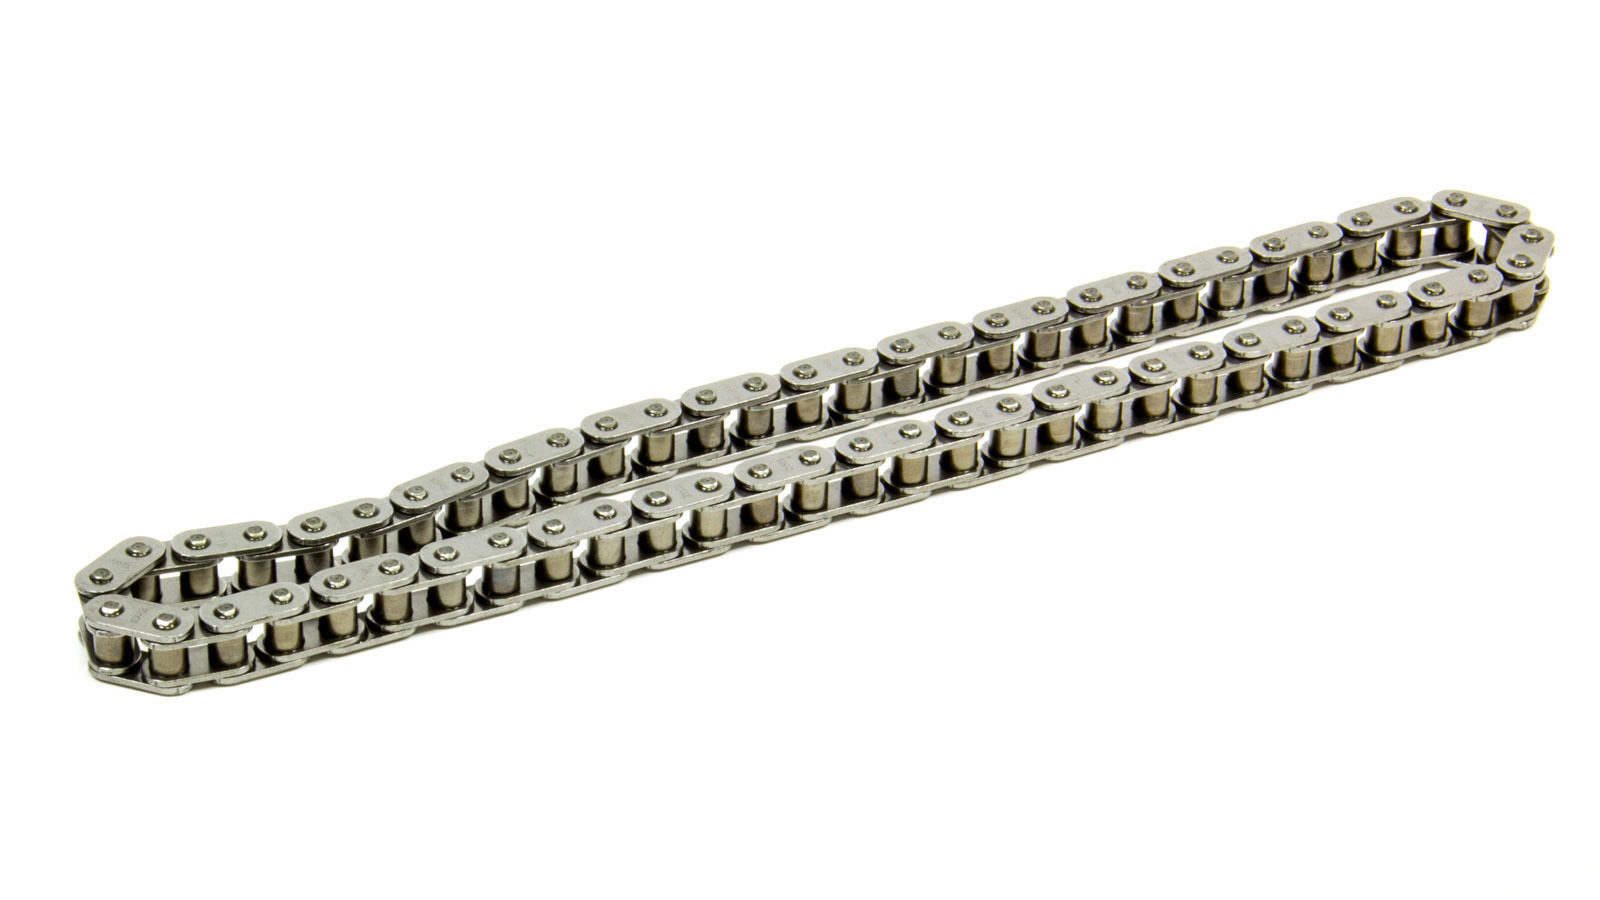 Rollmaster-Romac 3SR60-2 Timing Chain, Single Roller, 60 Link, Each